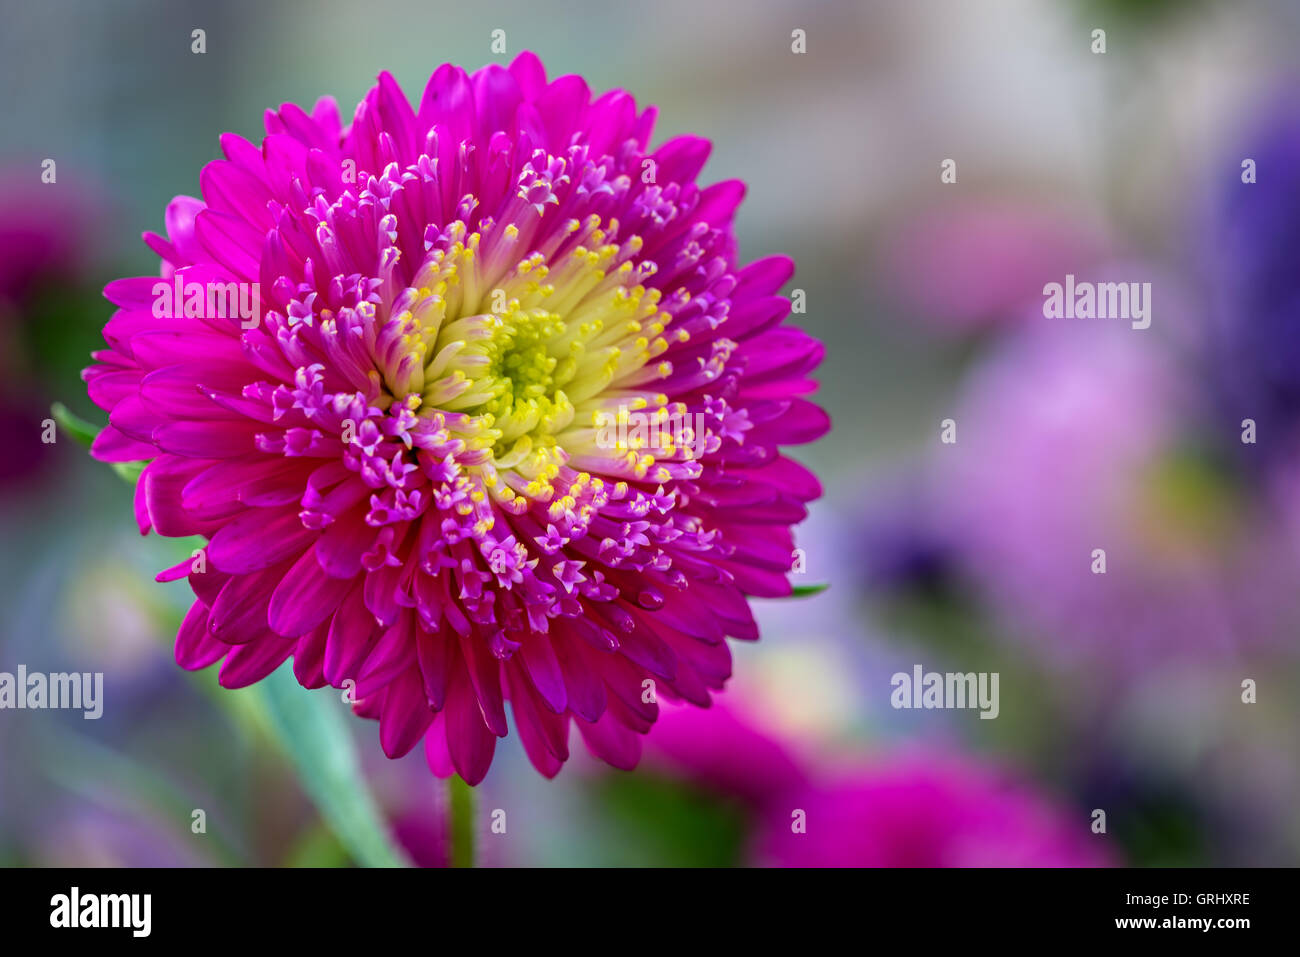 Bright purple aster flower close up stock photos bright purple bright purple aster flower close up selective focus stock image mightylinksfo